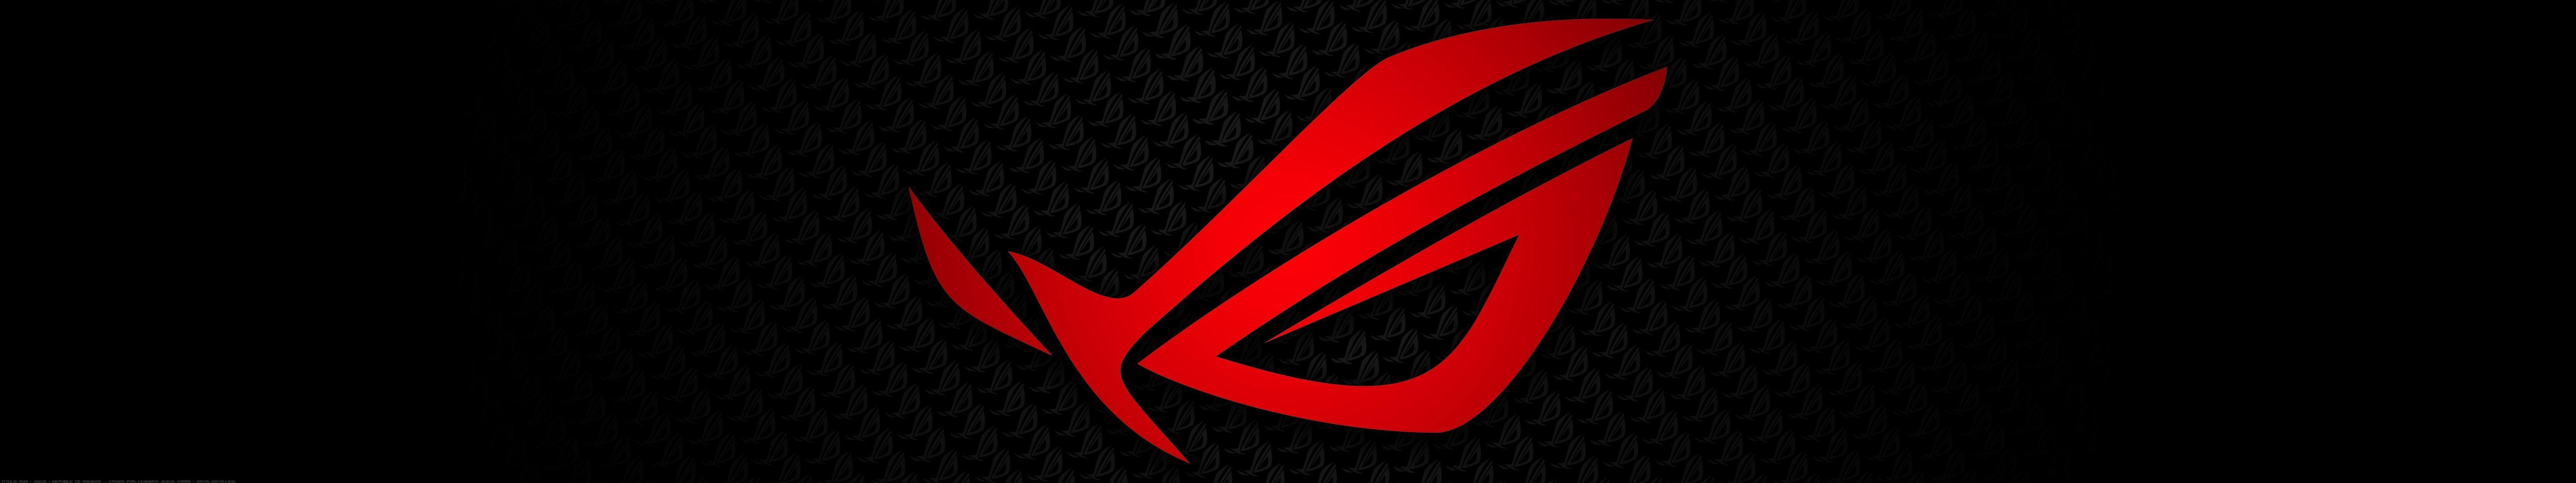 [Resim: WallpaperFusion-asus-republic-of-gamers-...0x1080.jpg]